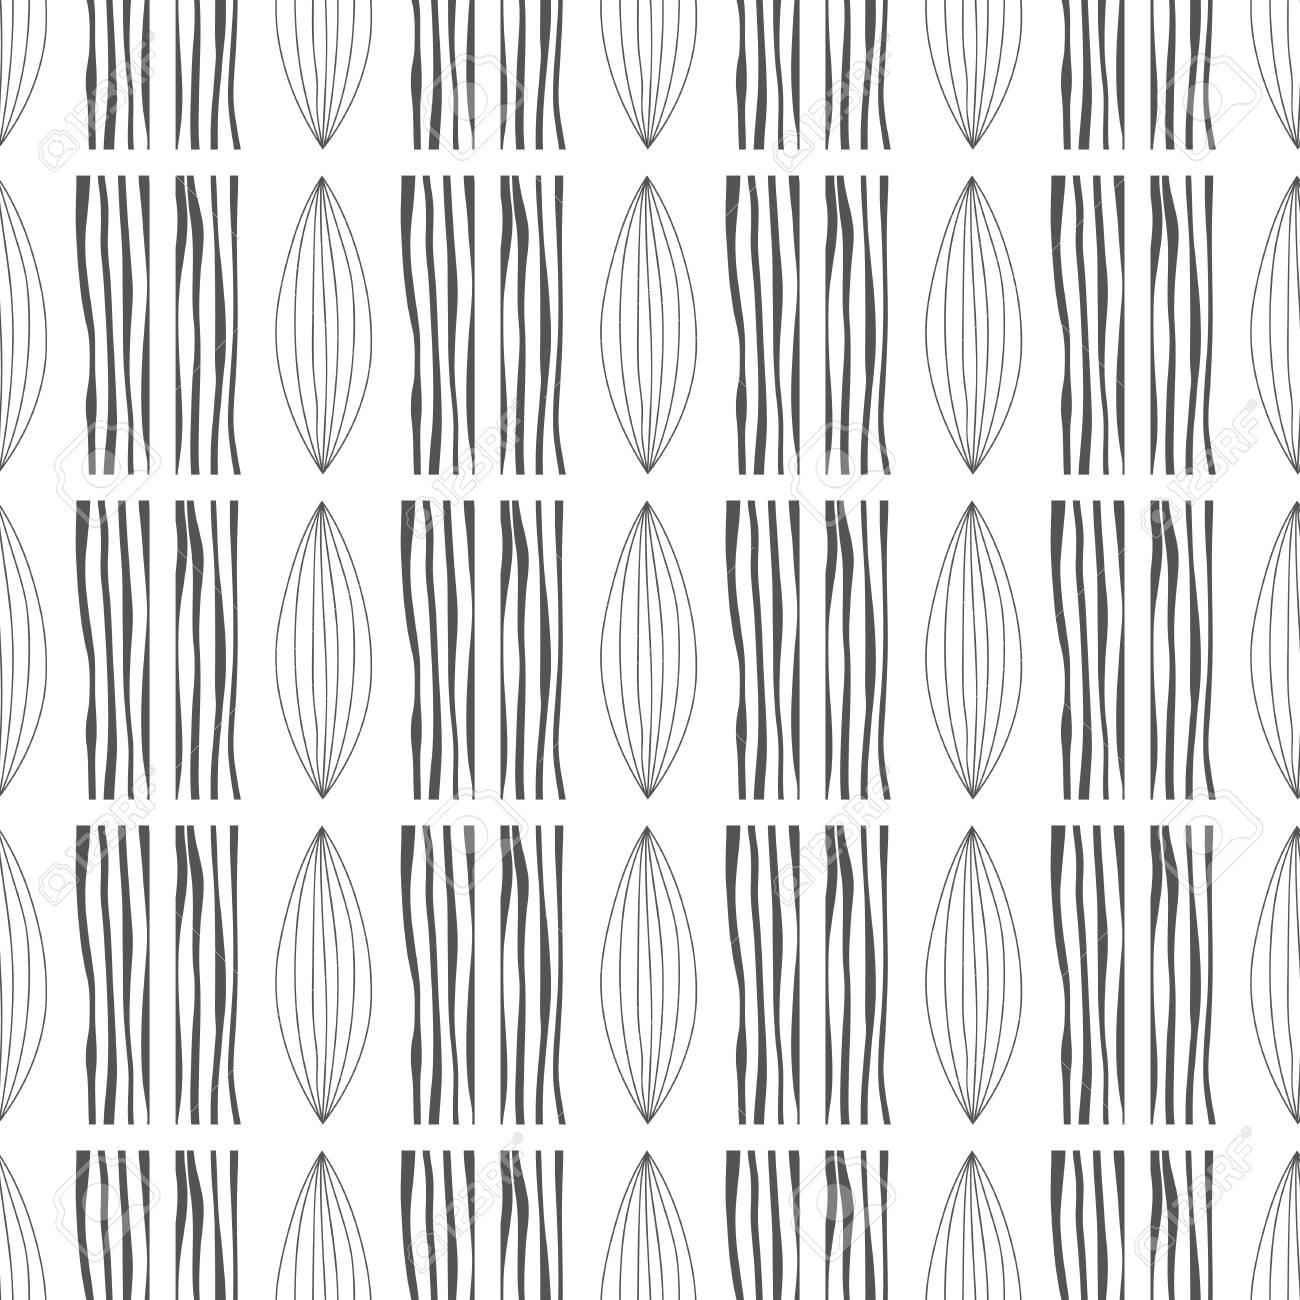 Abstract Background Seamless Pattern Black And White Illustration